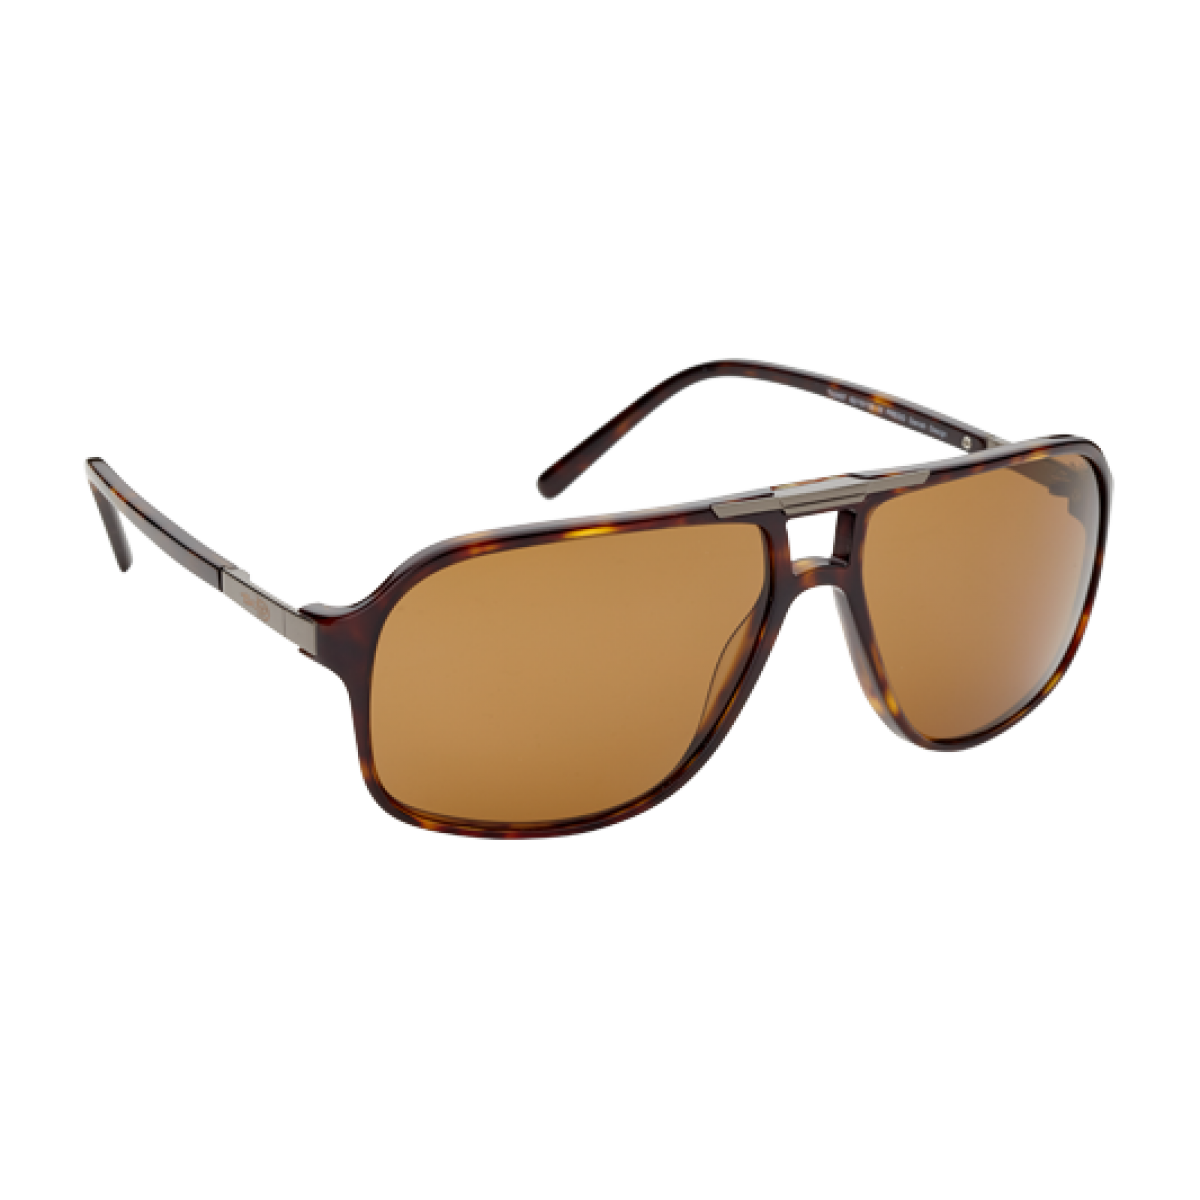 Tom Kristensen Solbrille Model TK2407-3